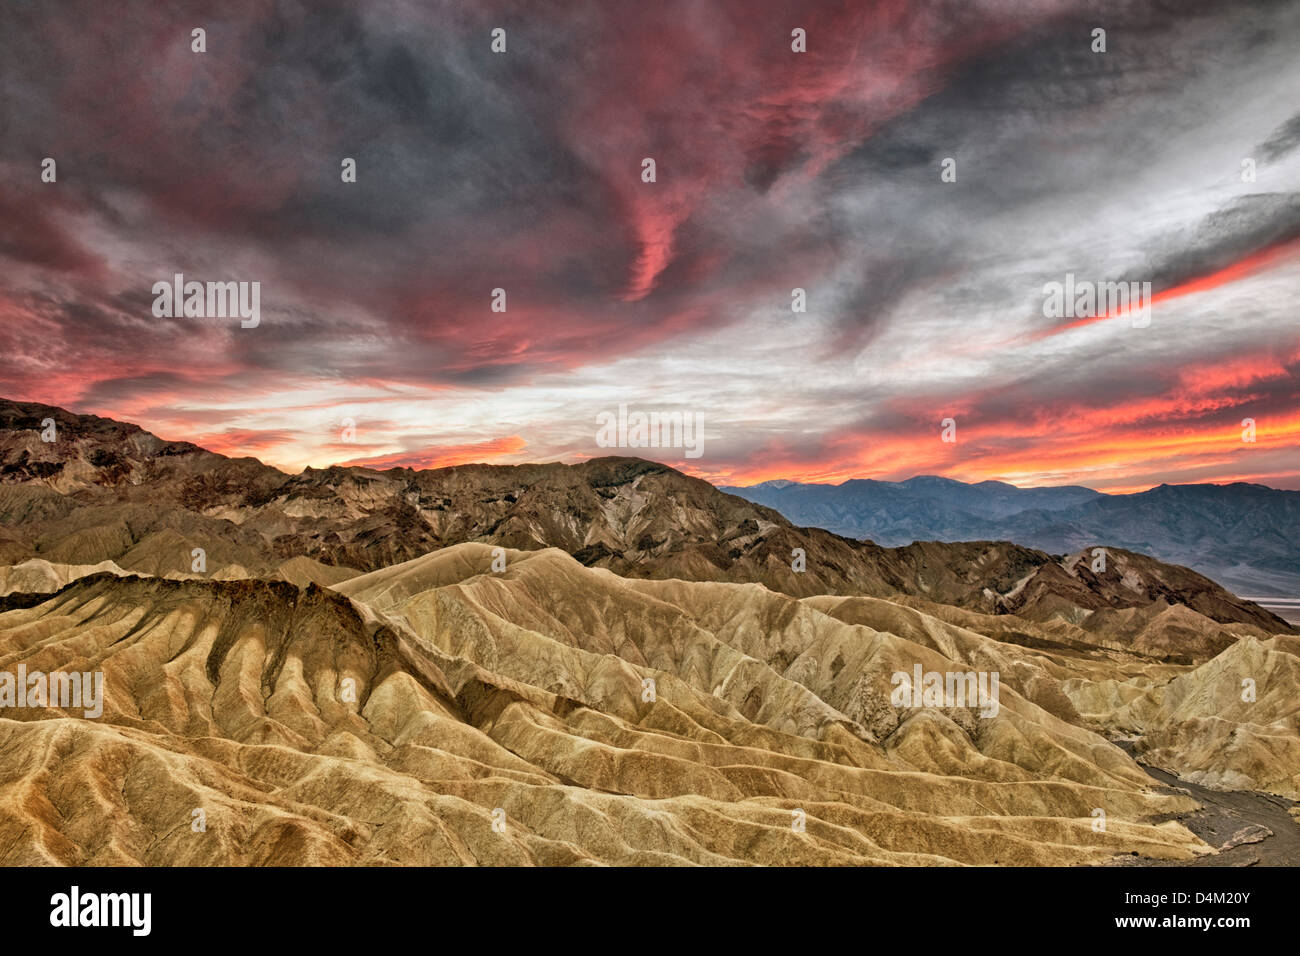 Spectacular sunset develops over Golden Canyon from Zabriskie Point and California's Death Valley National Park. - Stock Image